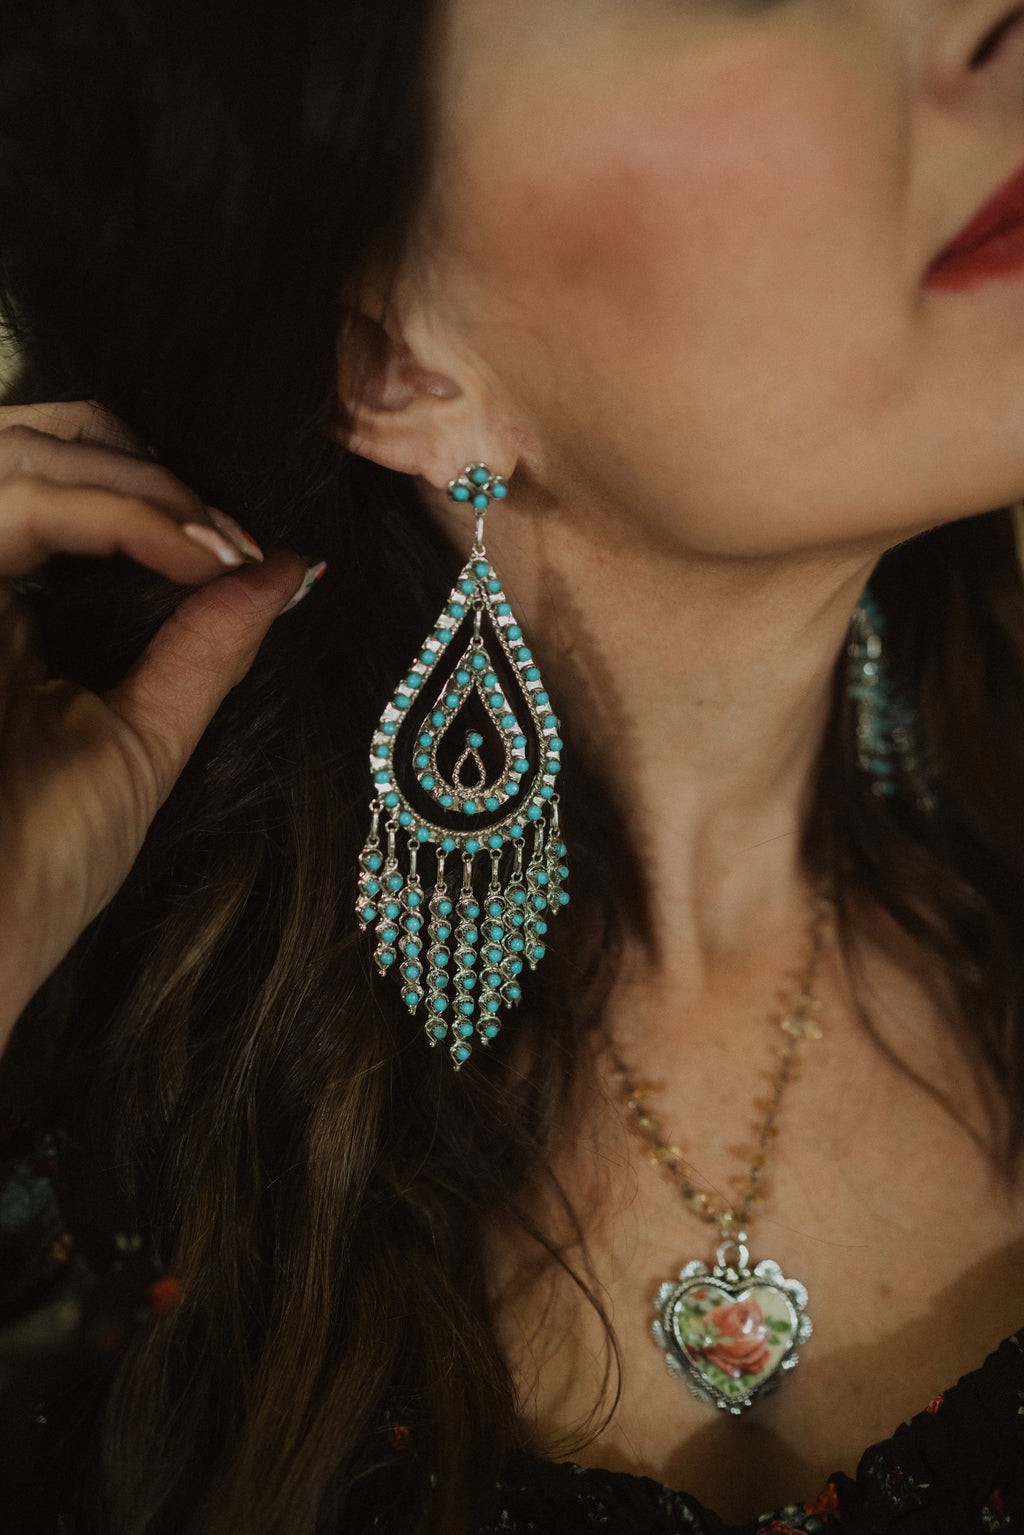 Large Rain Drop Chandelier Earrings